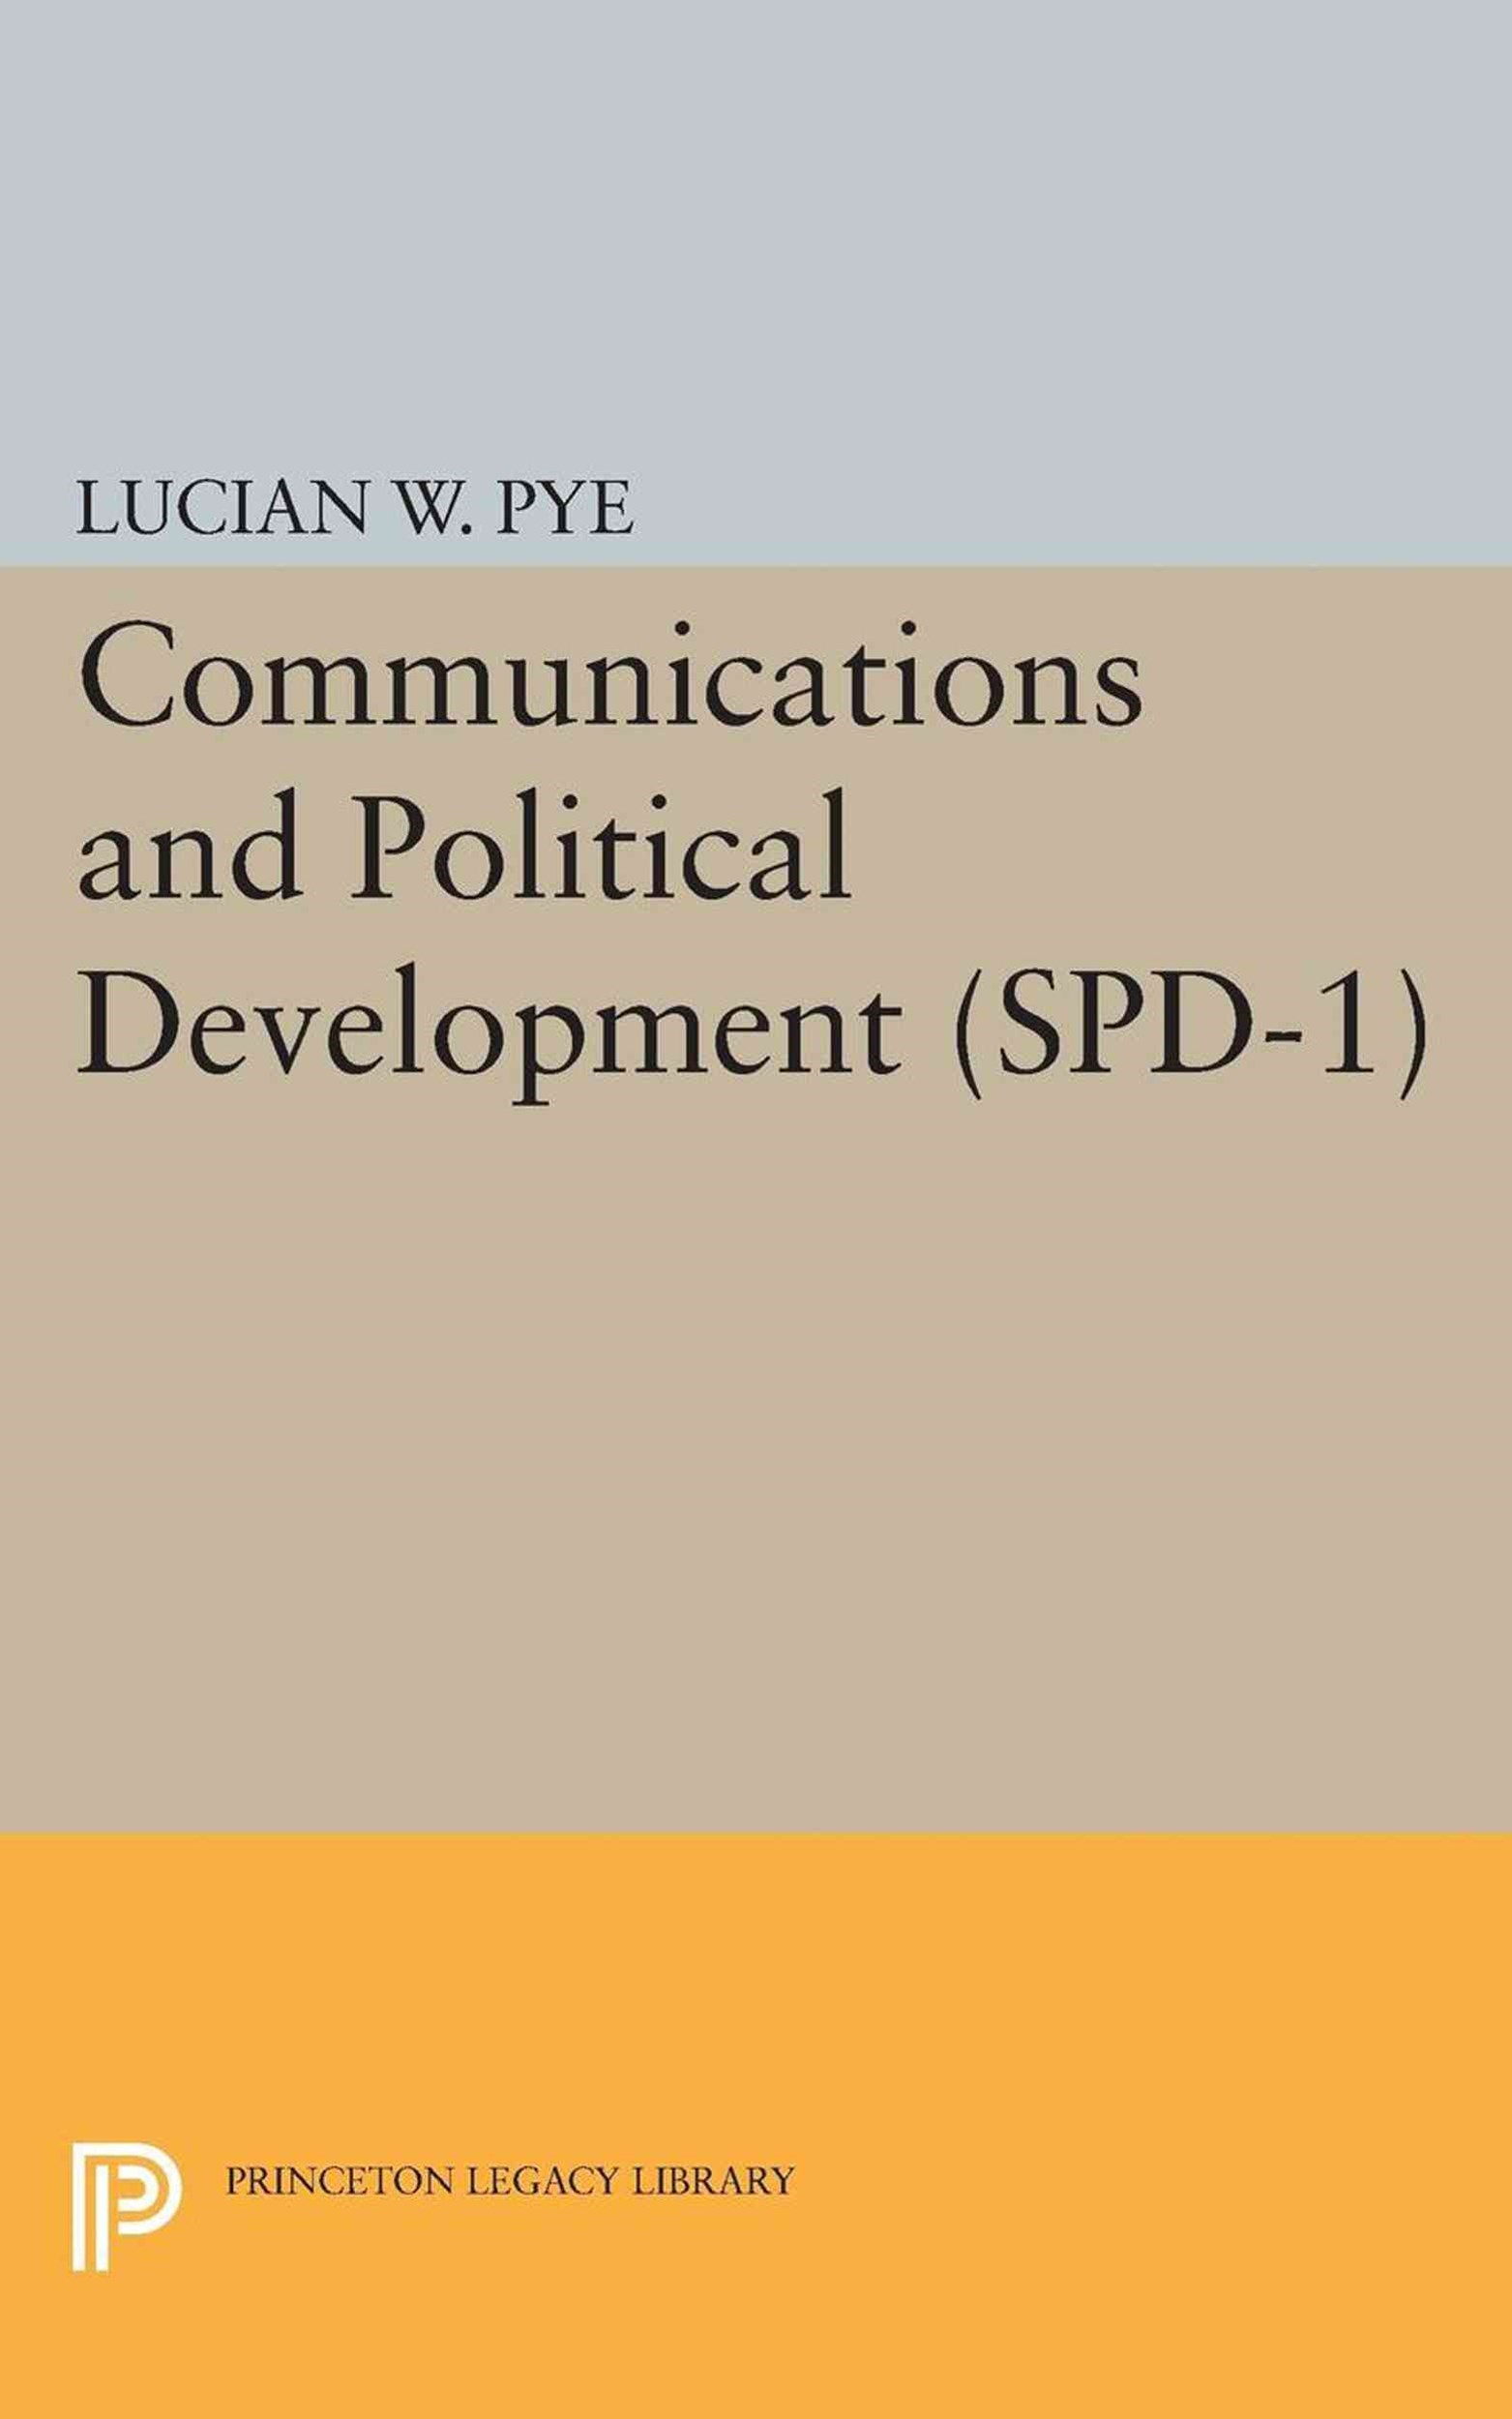 Communications and Political Development. (SPD-1)